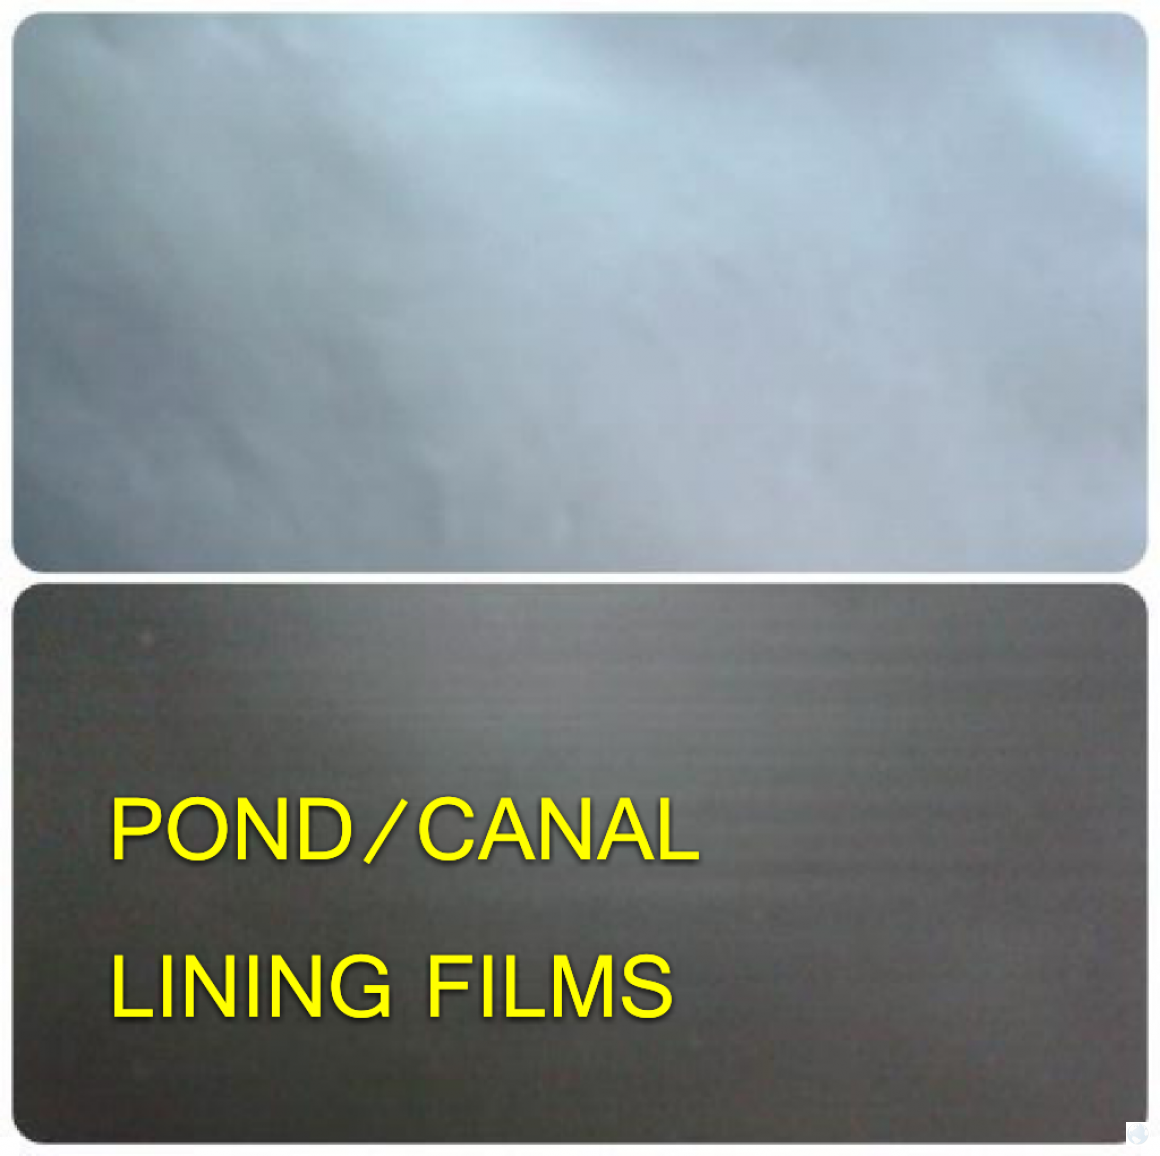 Pond or Canal Lining Films